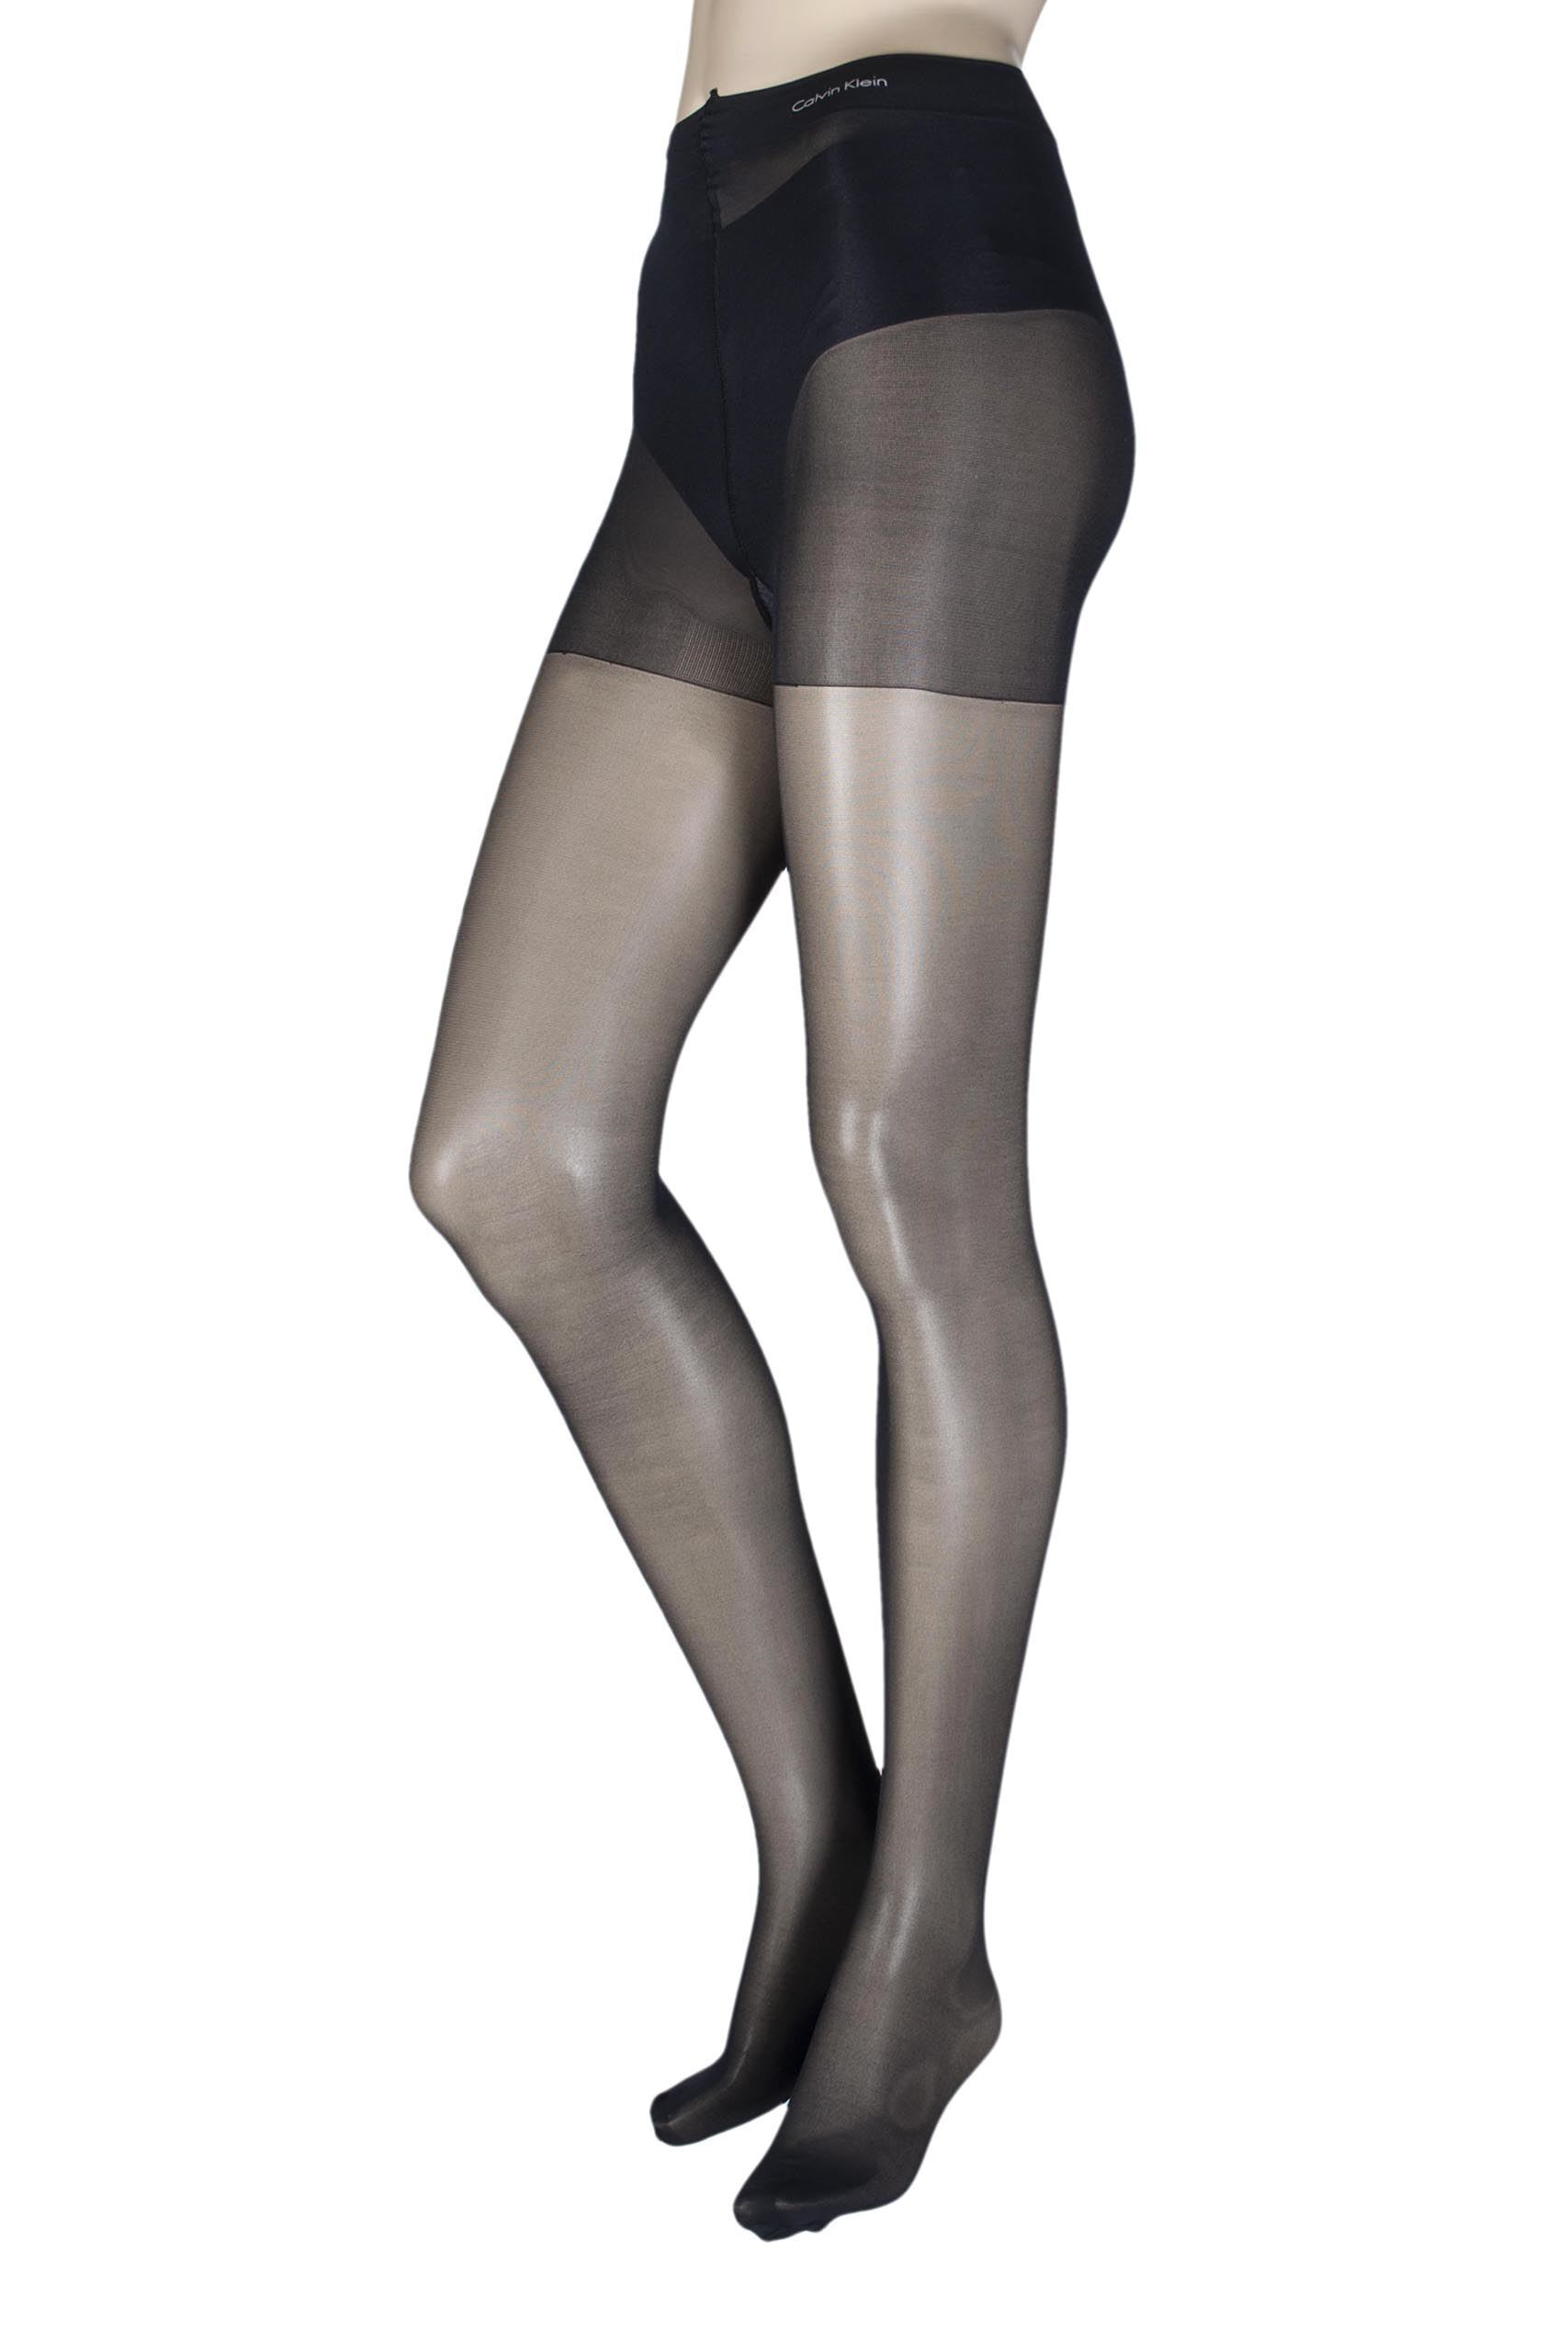 Image of 1 Pair Black Sheer Essentials Active Tights with Control Top Ladies Large - Calvin Klein